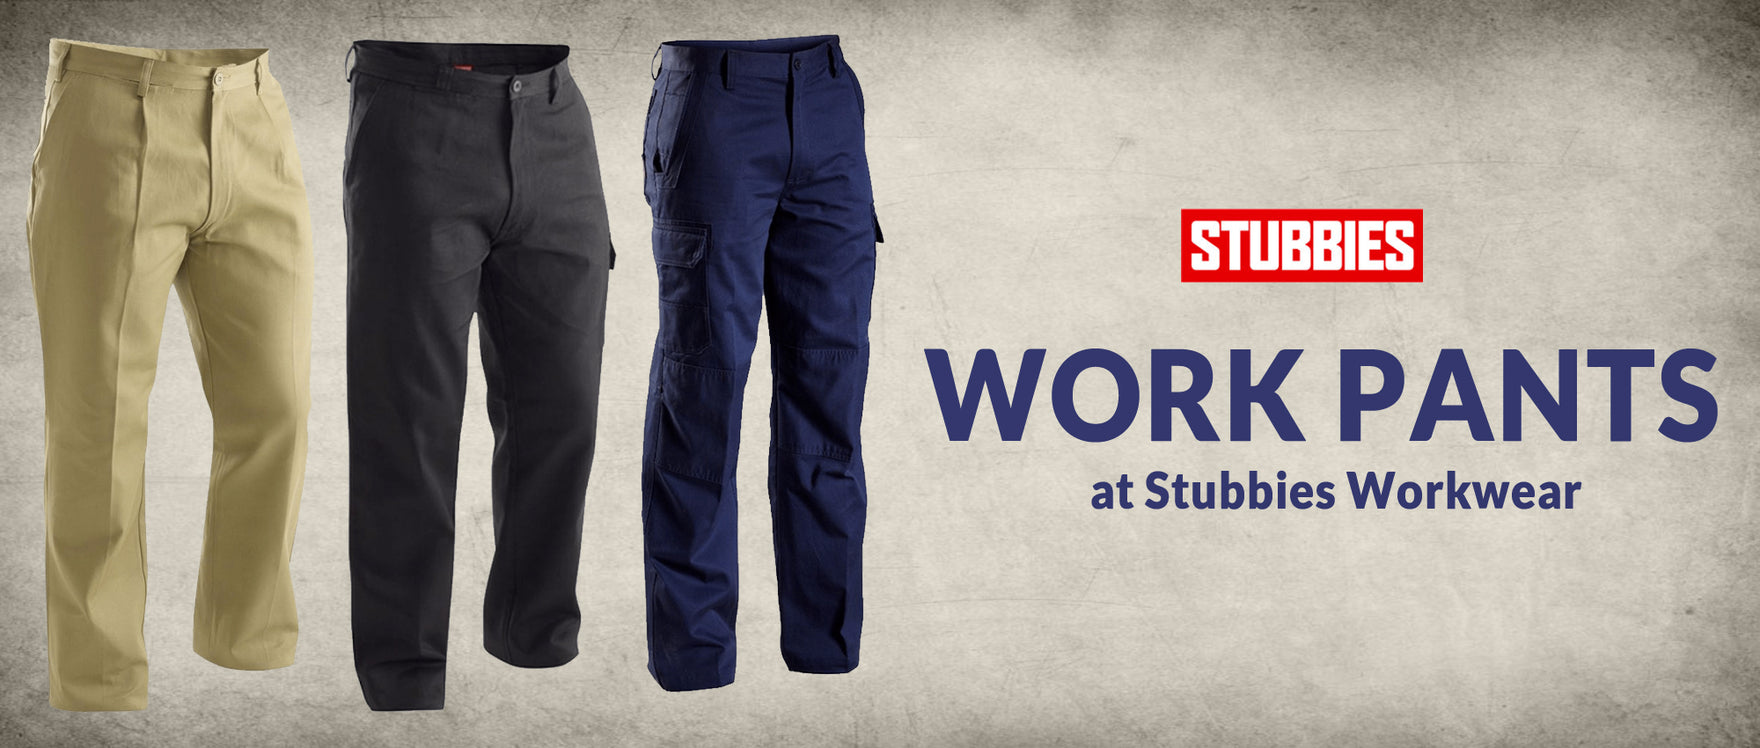 Work Pants at Stubbies Workwear